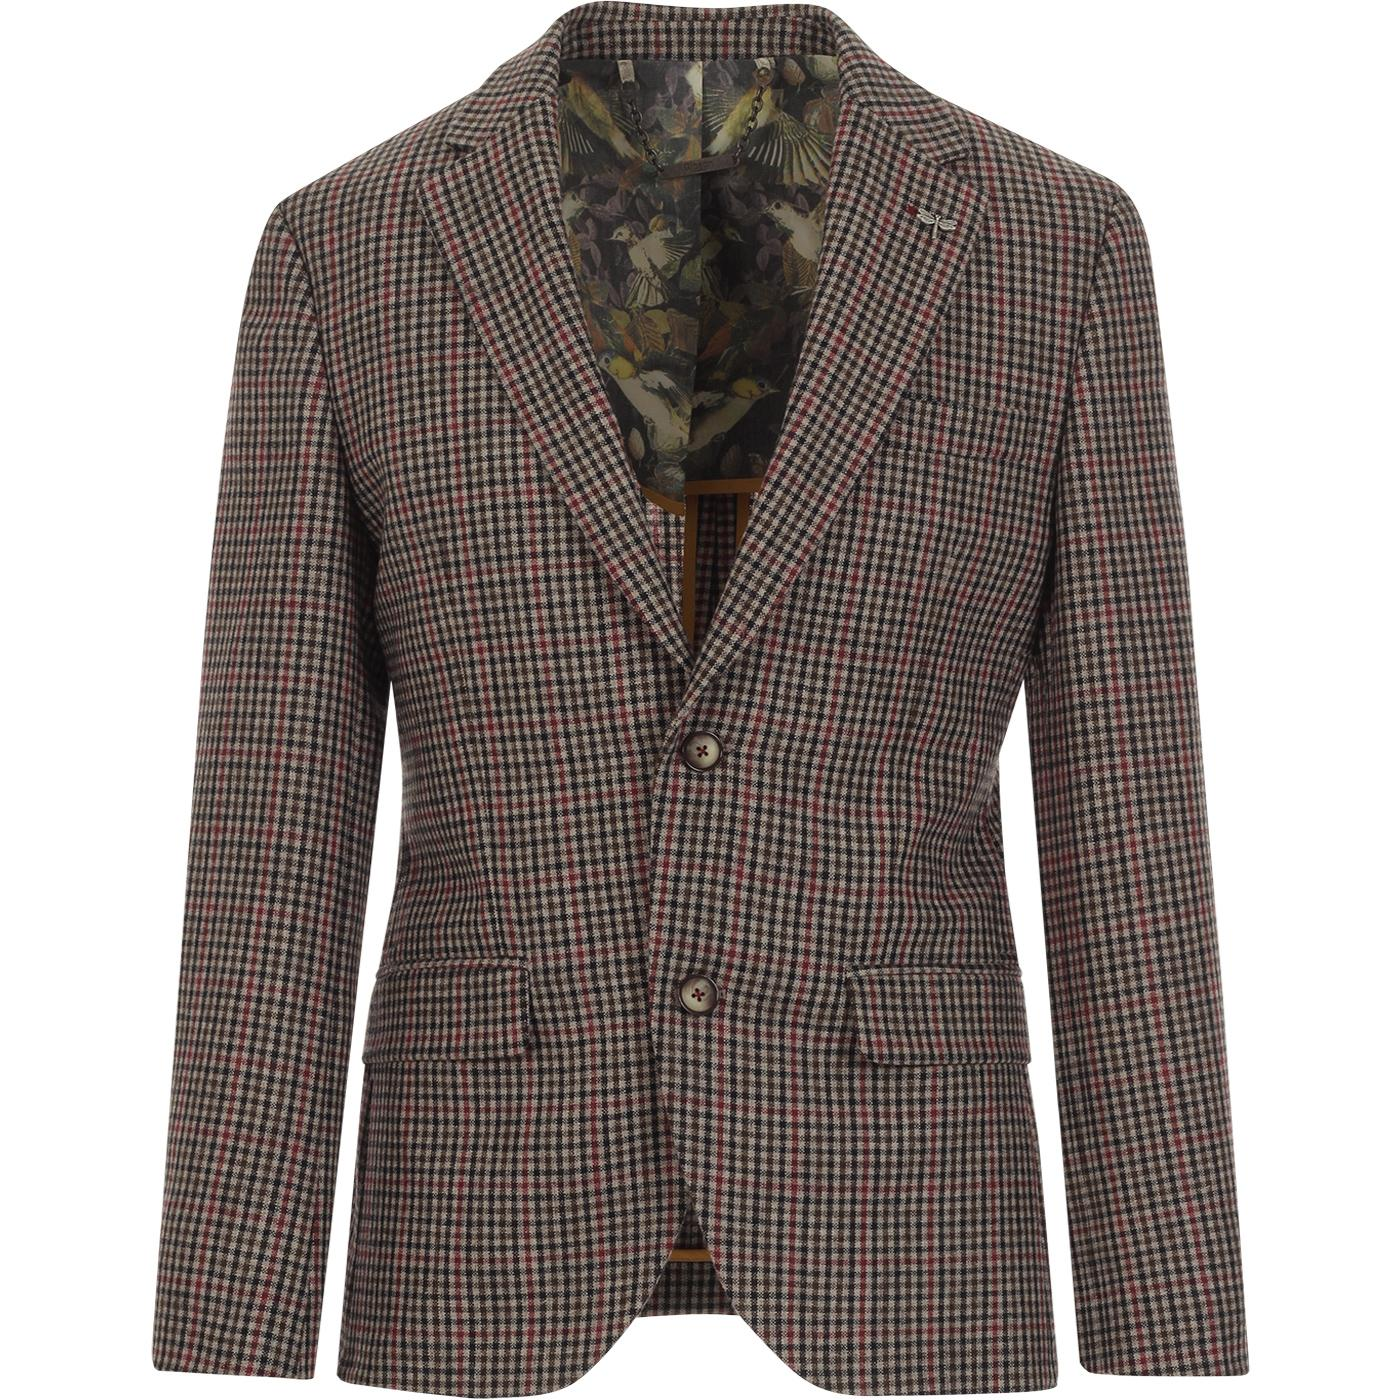 GIBSON LONDON 2 Button Gingham Check Suit Blazer